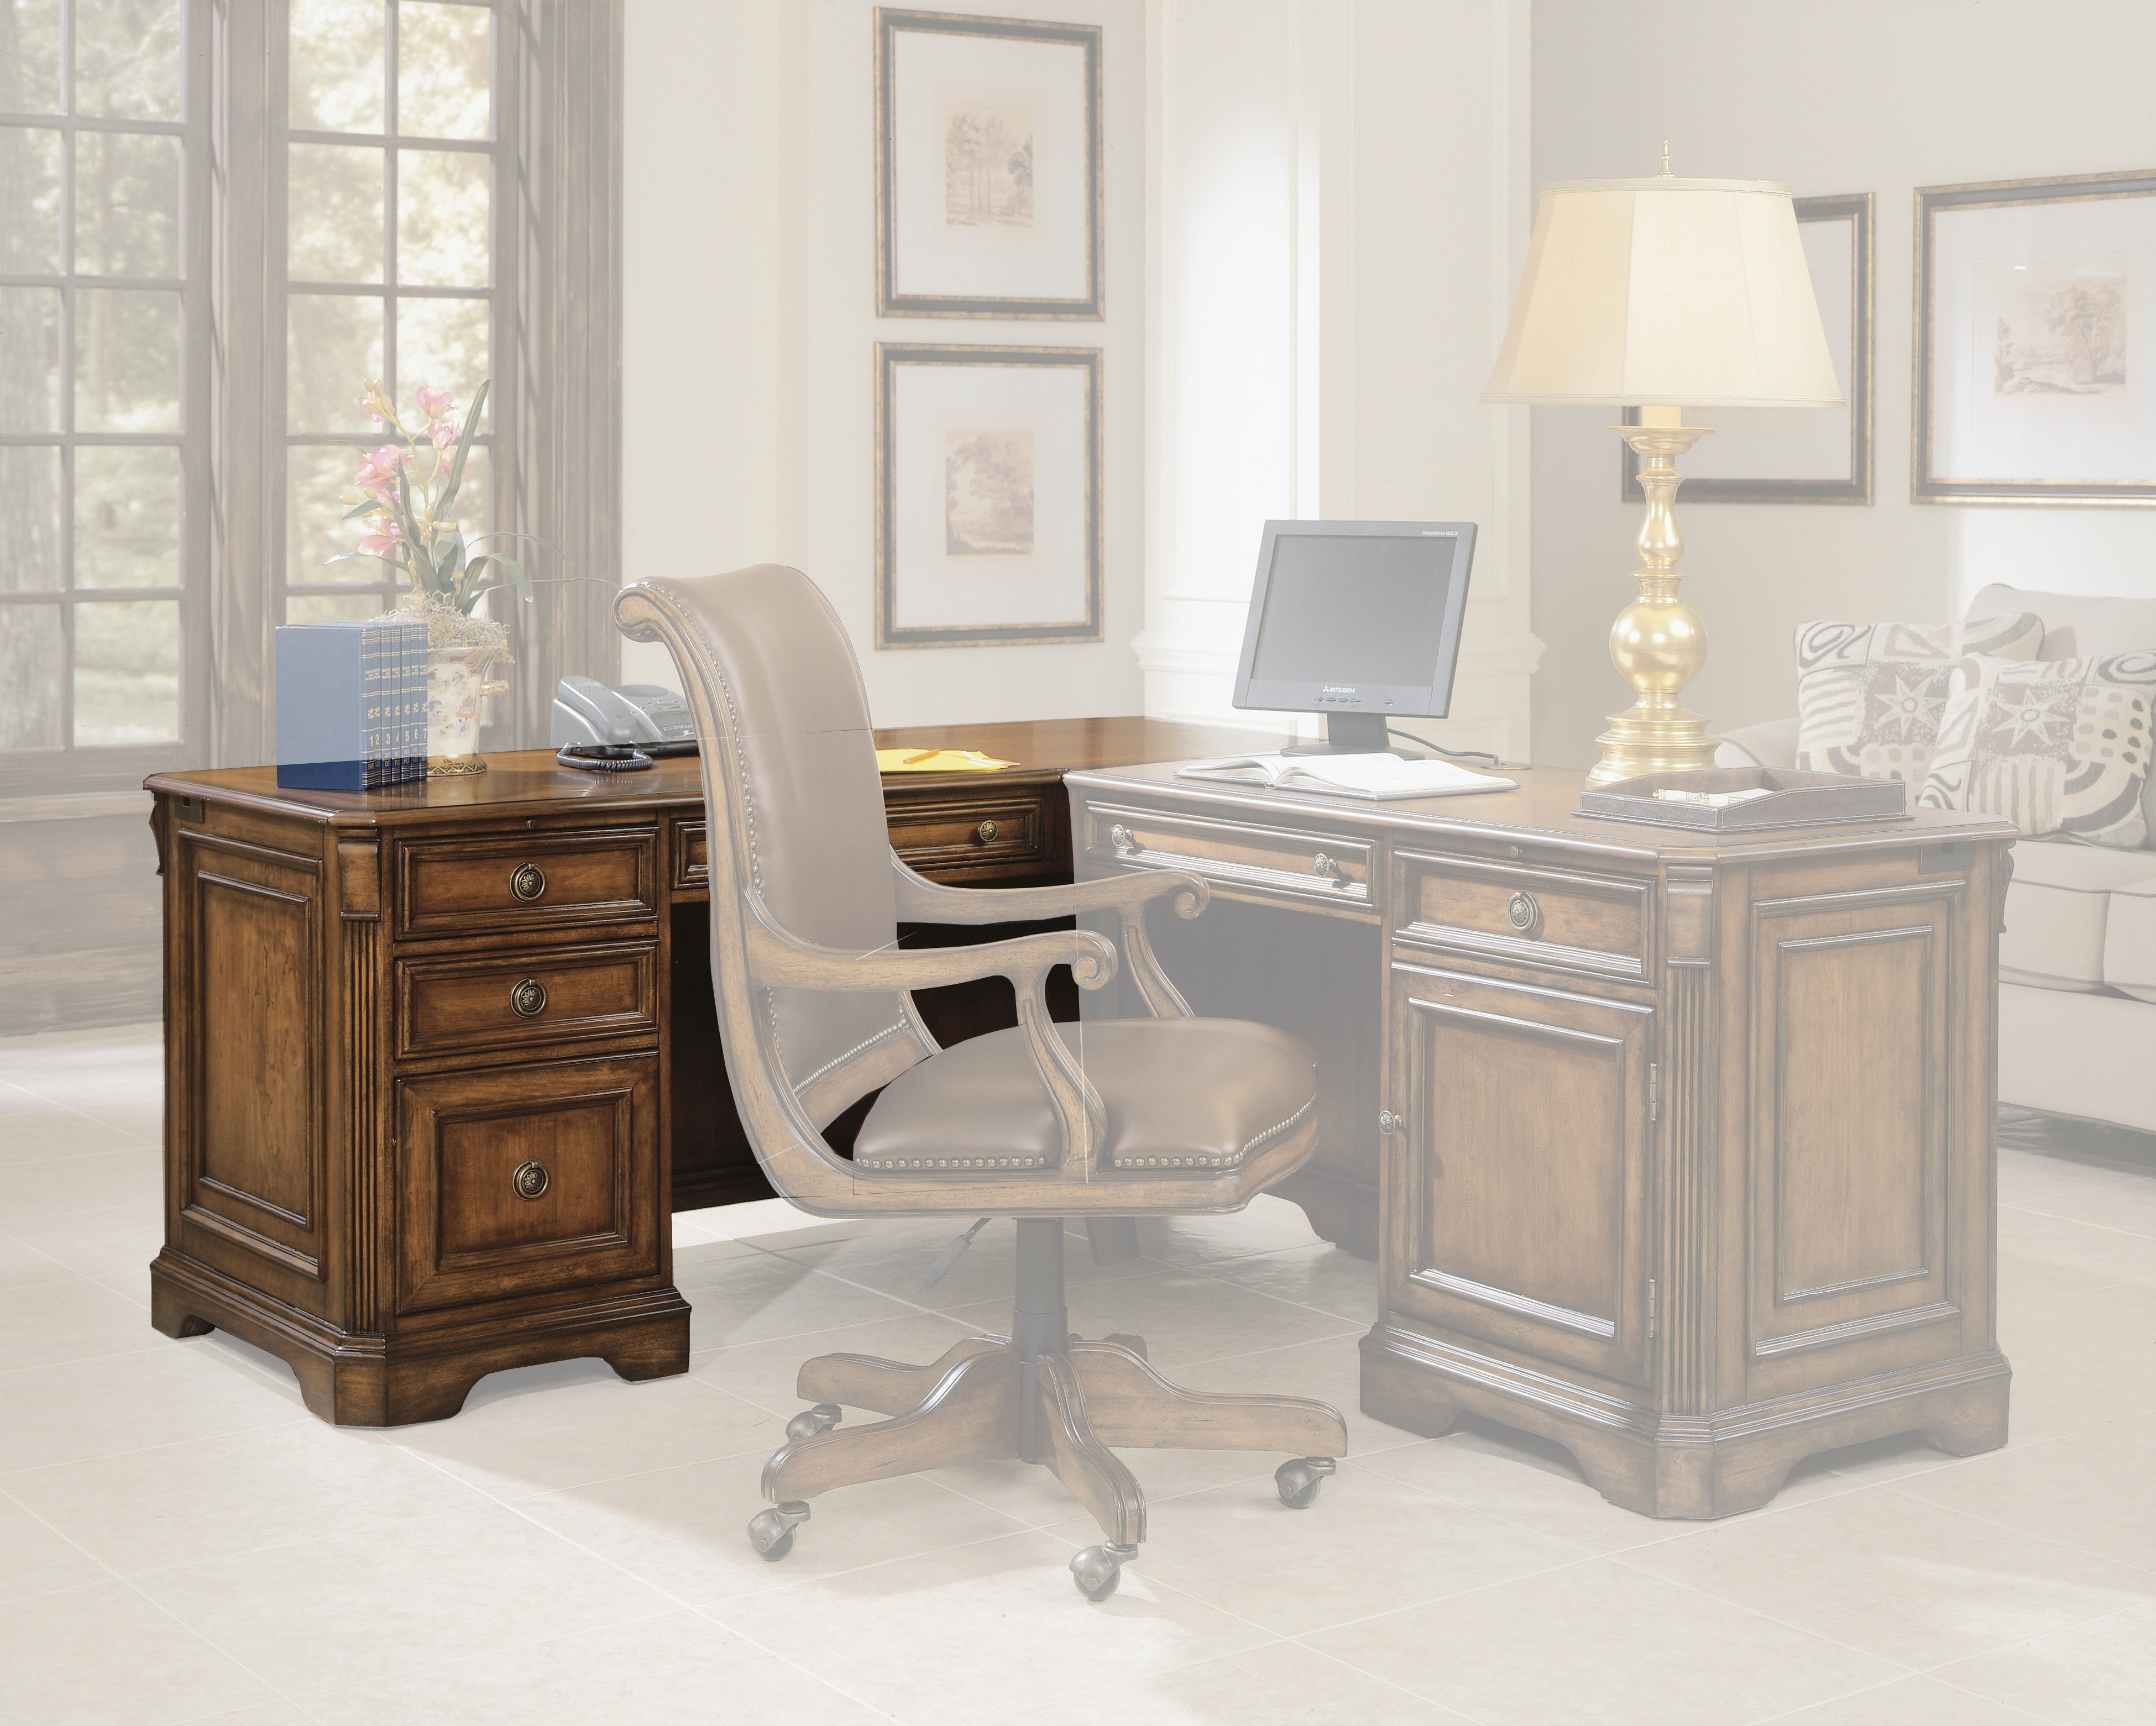 Hooker Furniture Brookhaven Left Pedestal Desk 281-10-468